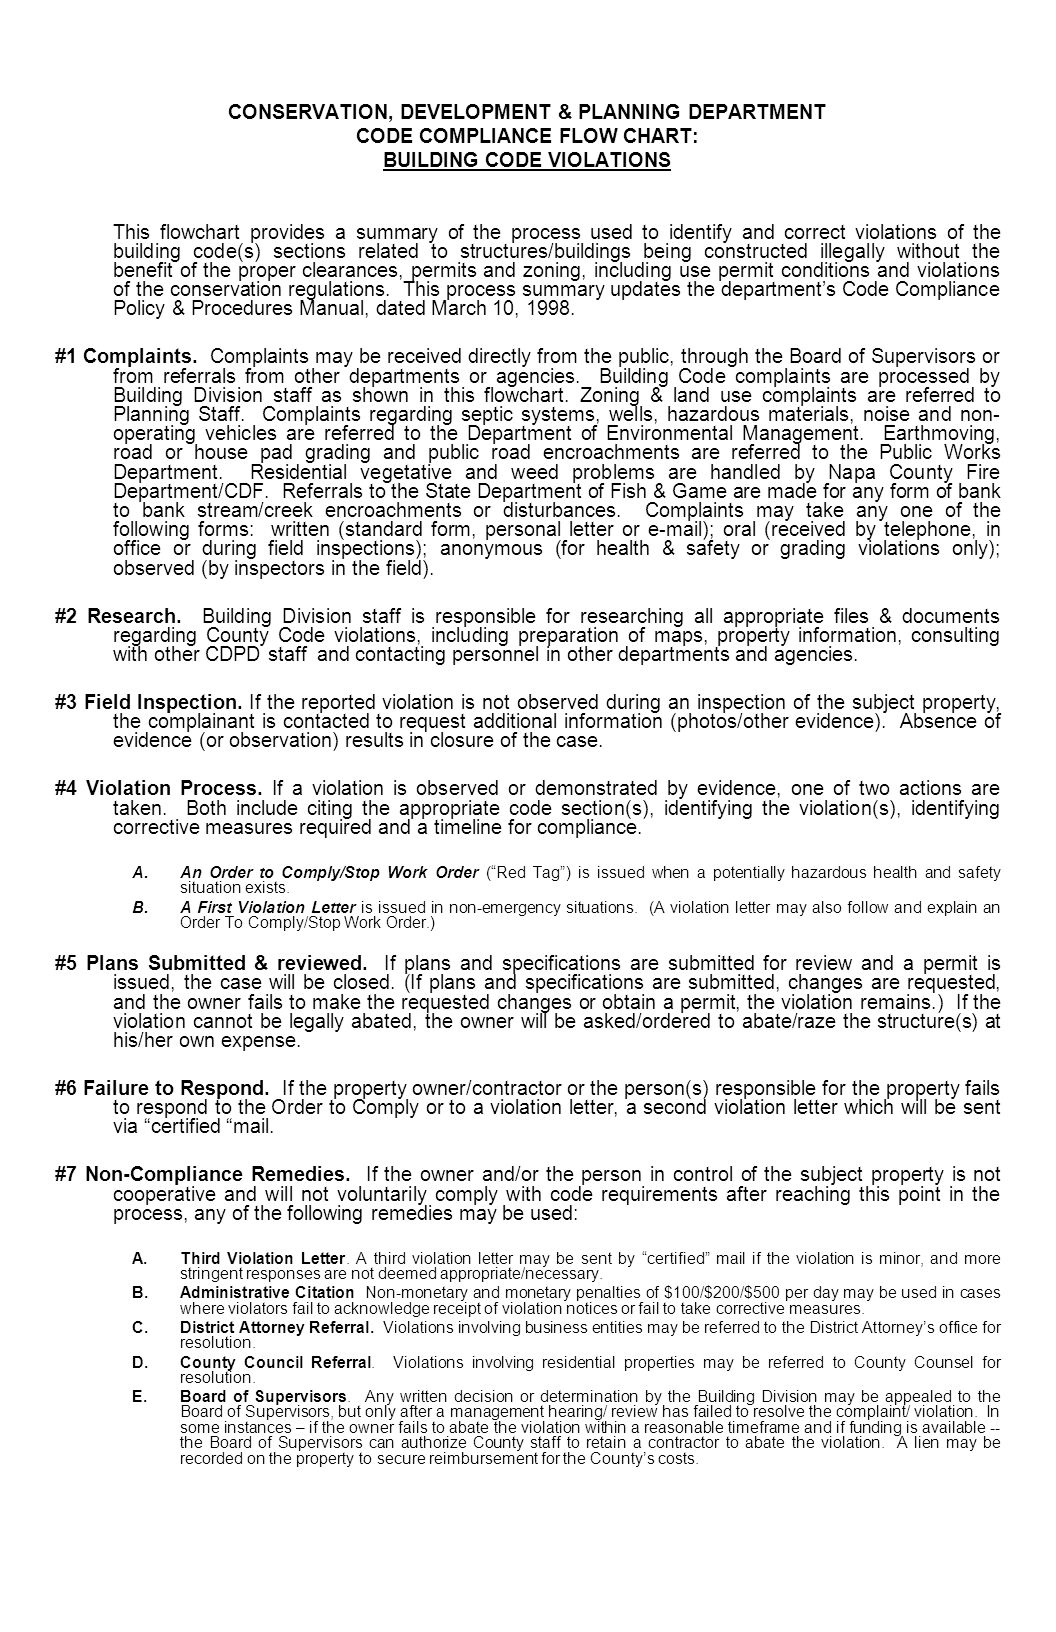 Napa County Conservation Development And Planning Department Code